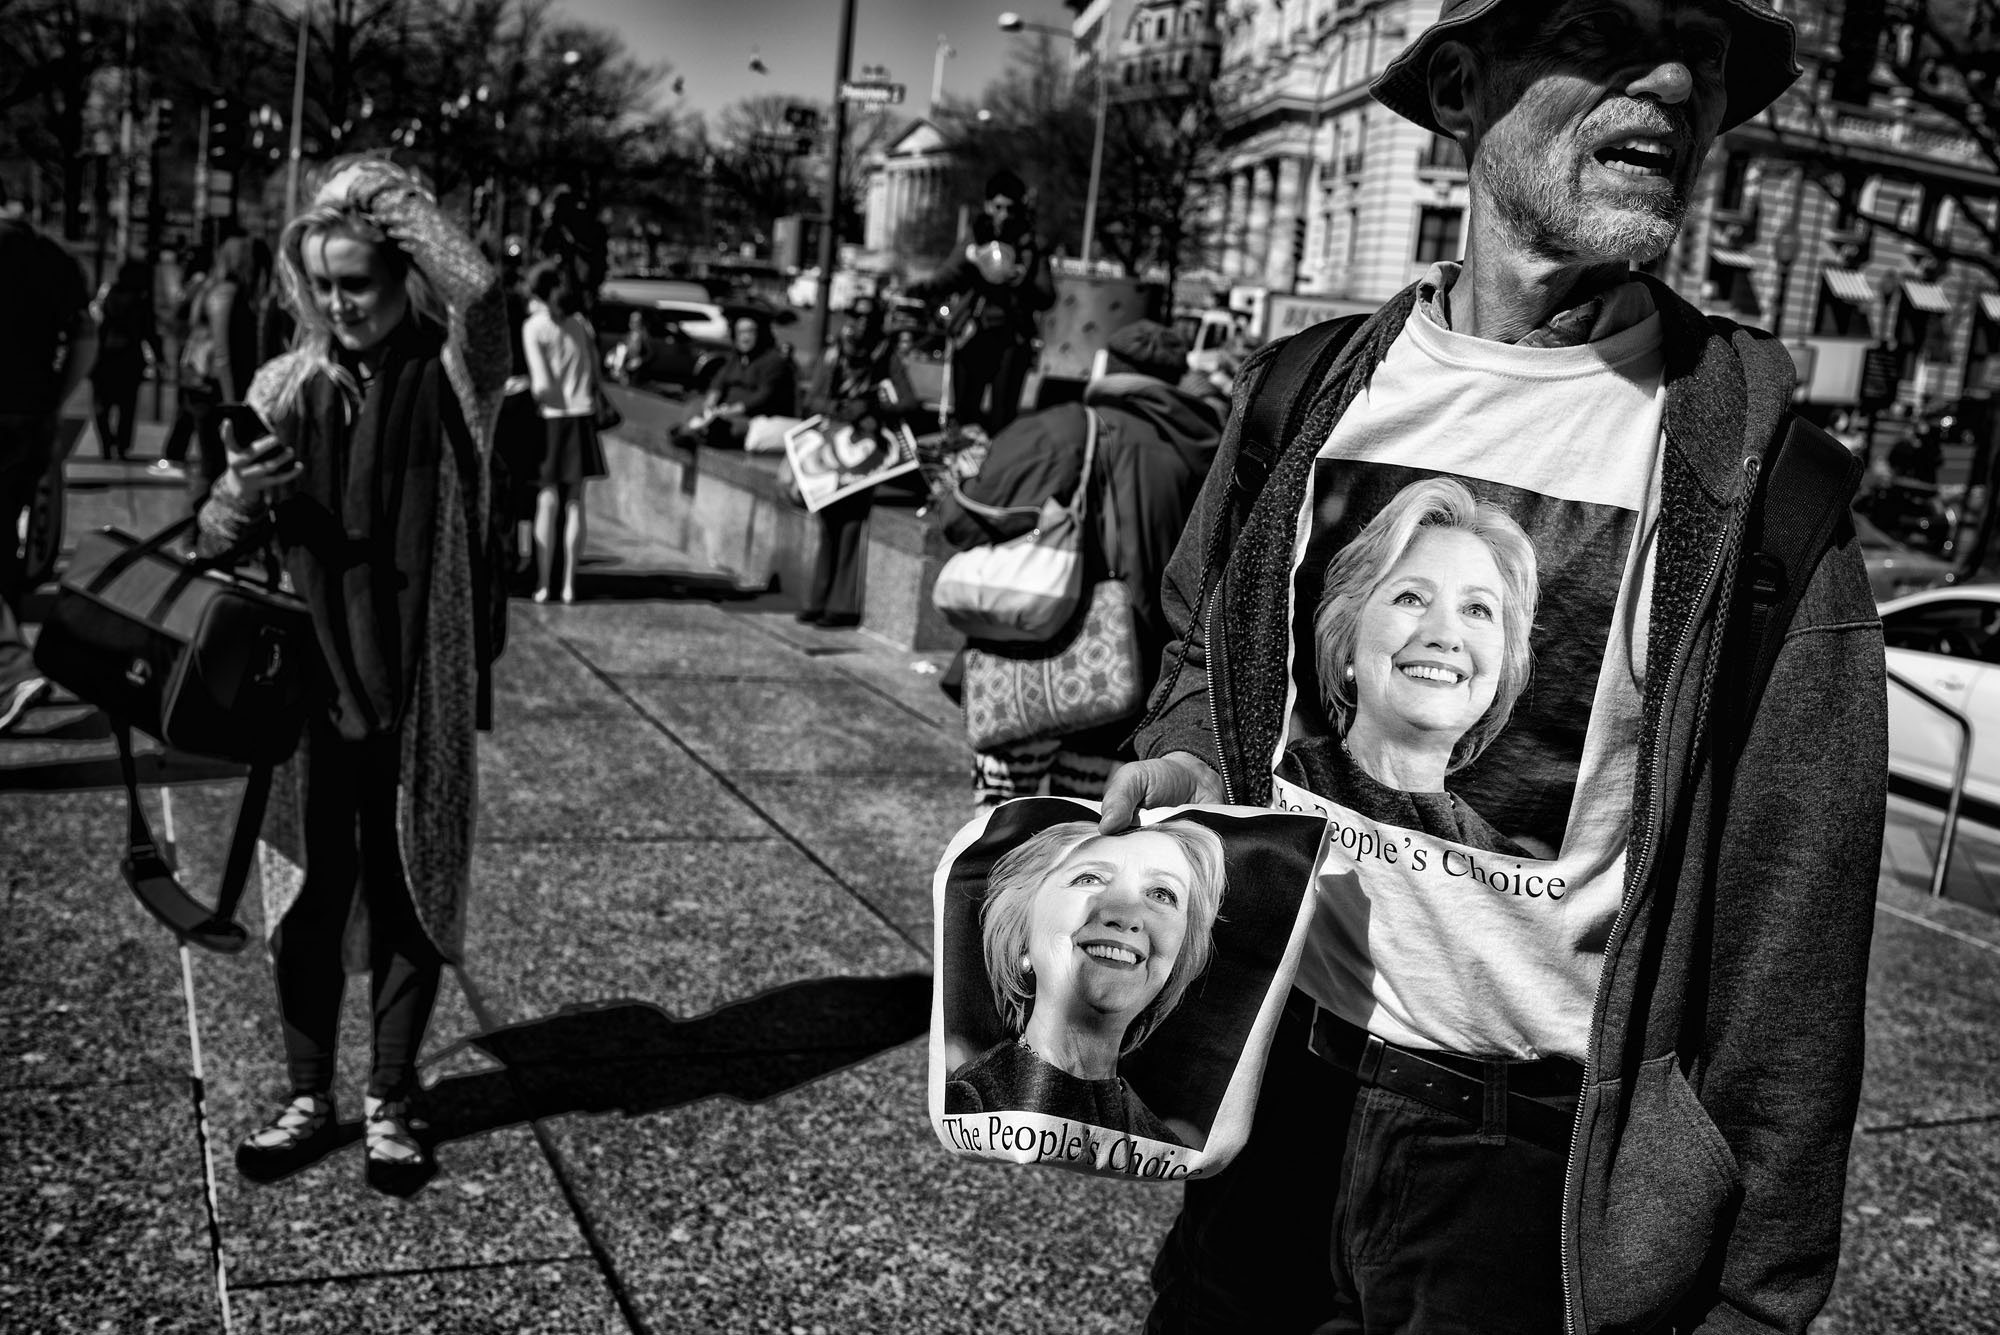 A man sells Hillary Clinton t-shirts at the Day Without Women protest in Washington, DC on March 8, 2017.